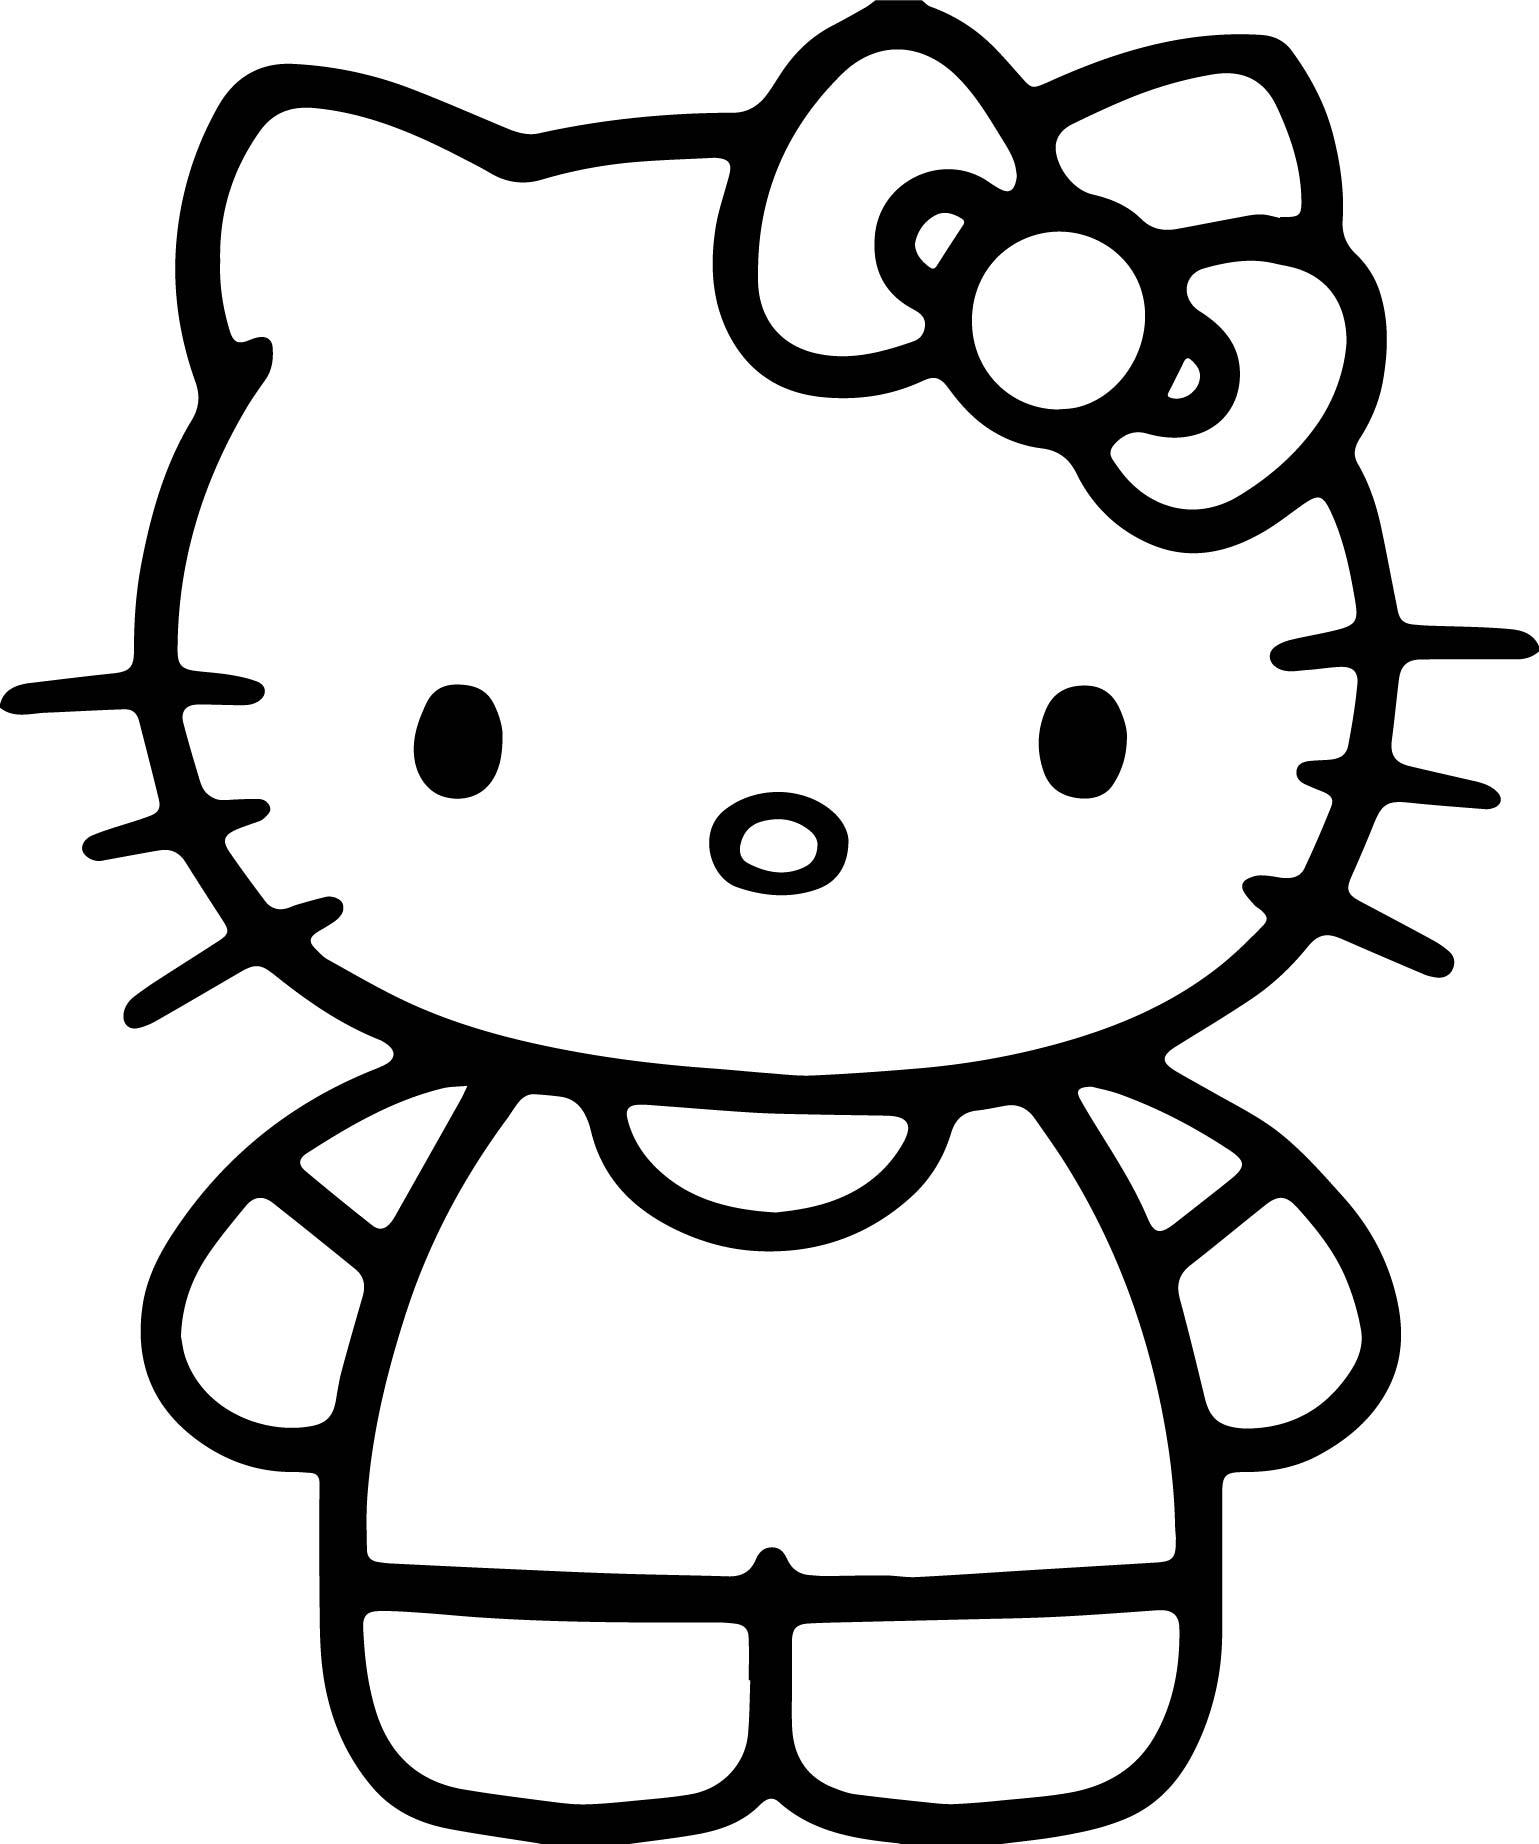 Coloring Pages For 3 Year Olds Coloring Pages For 3 Year Olds Free Download Best Coloring Pages